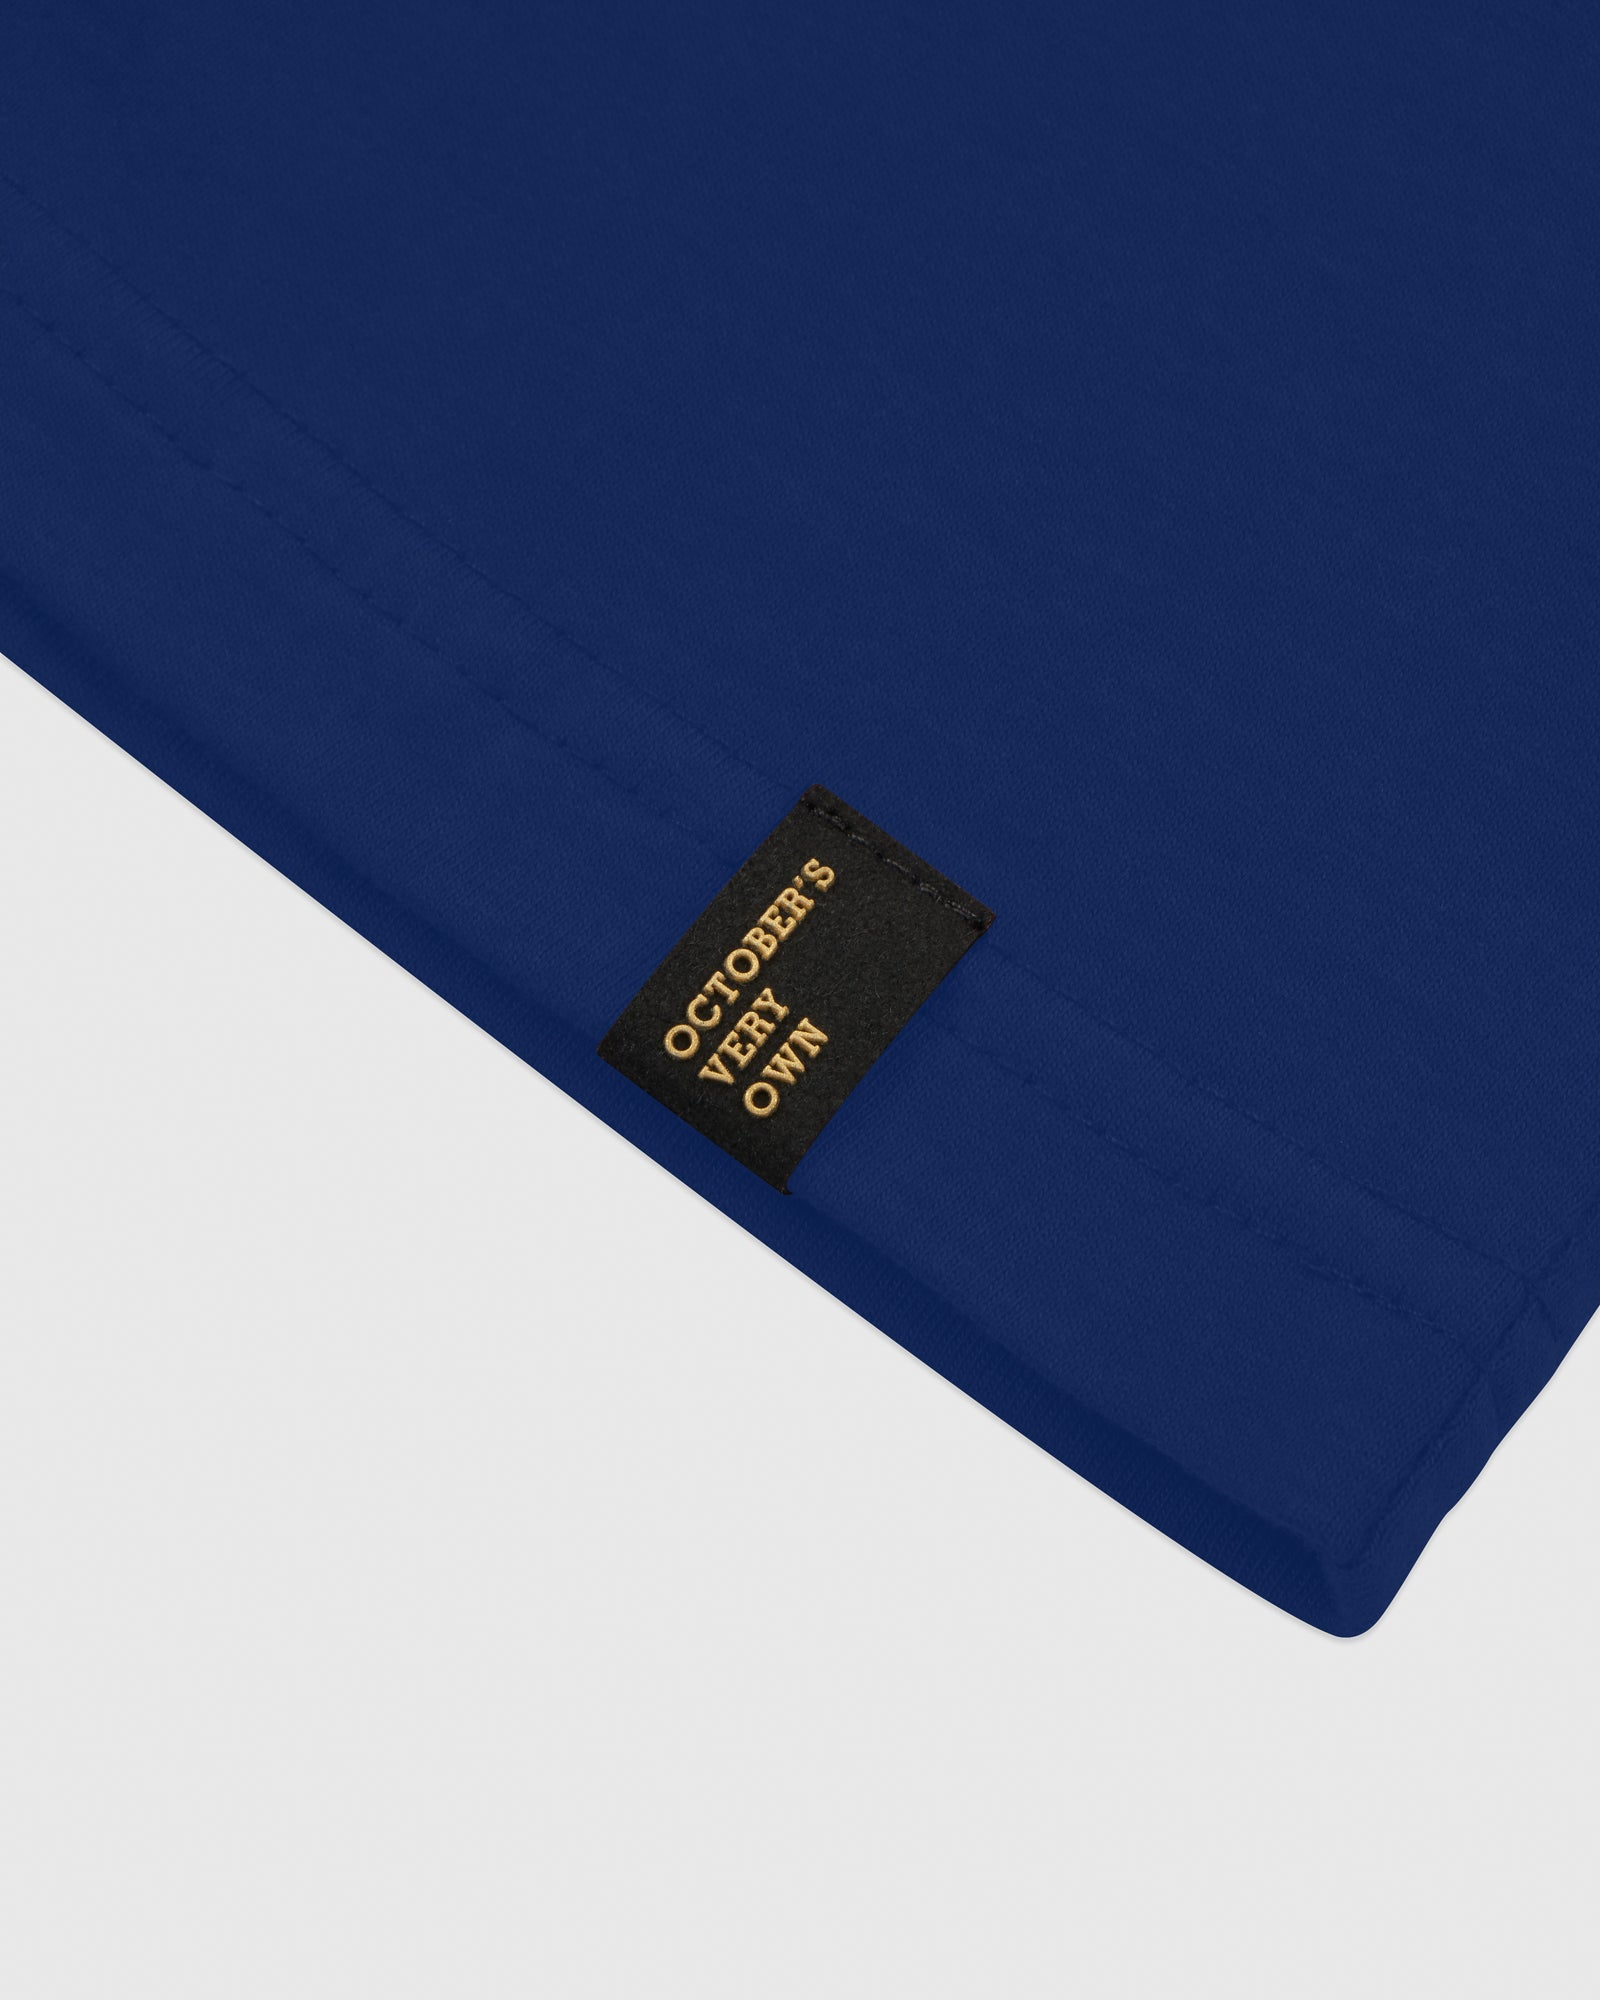 FAMILIA LONGSLEEVE T-SHIRT - ROYAL BLUE